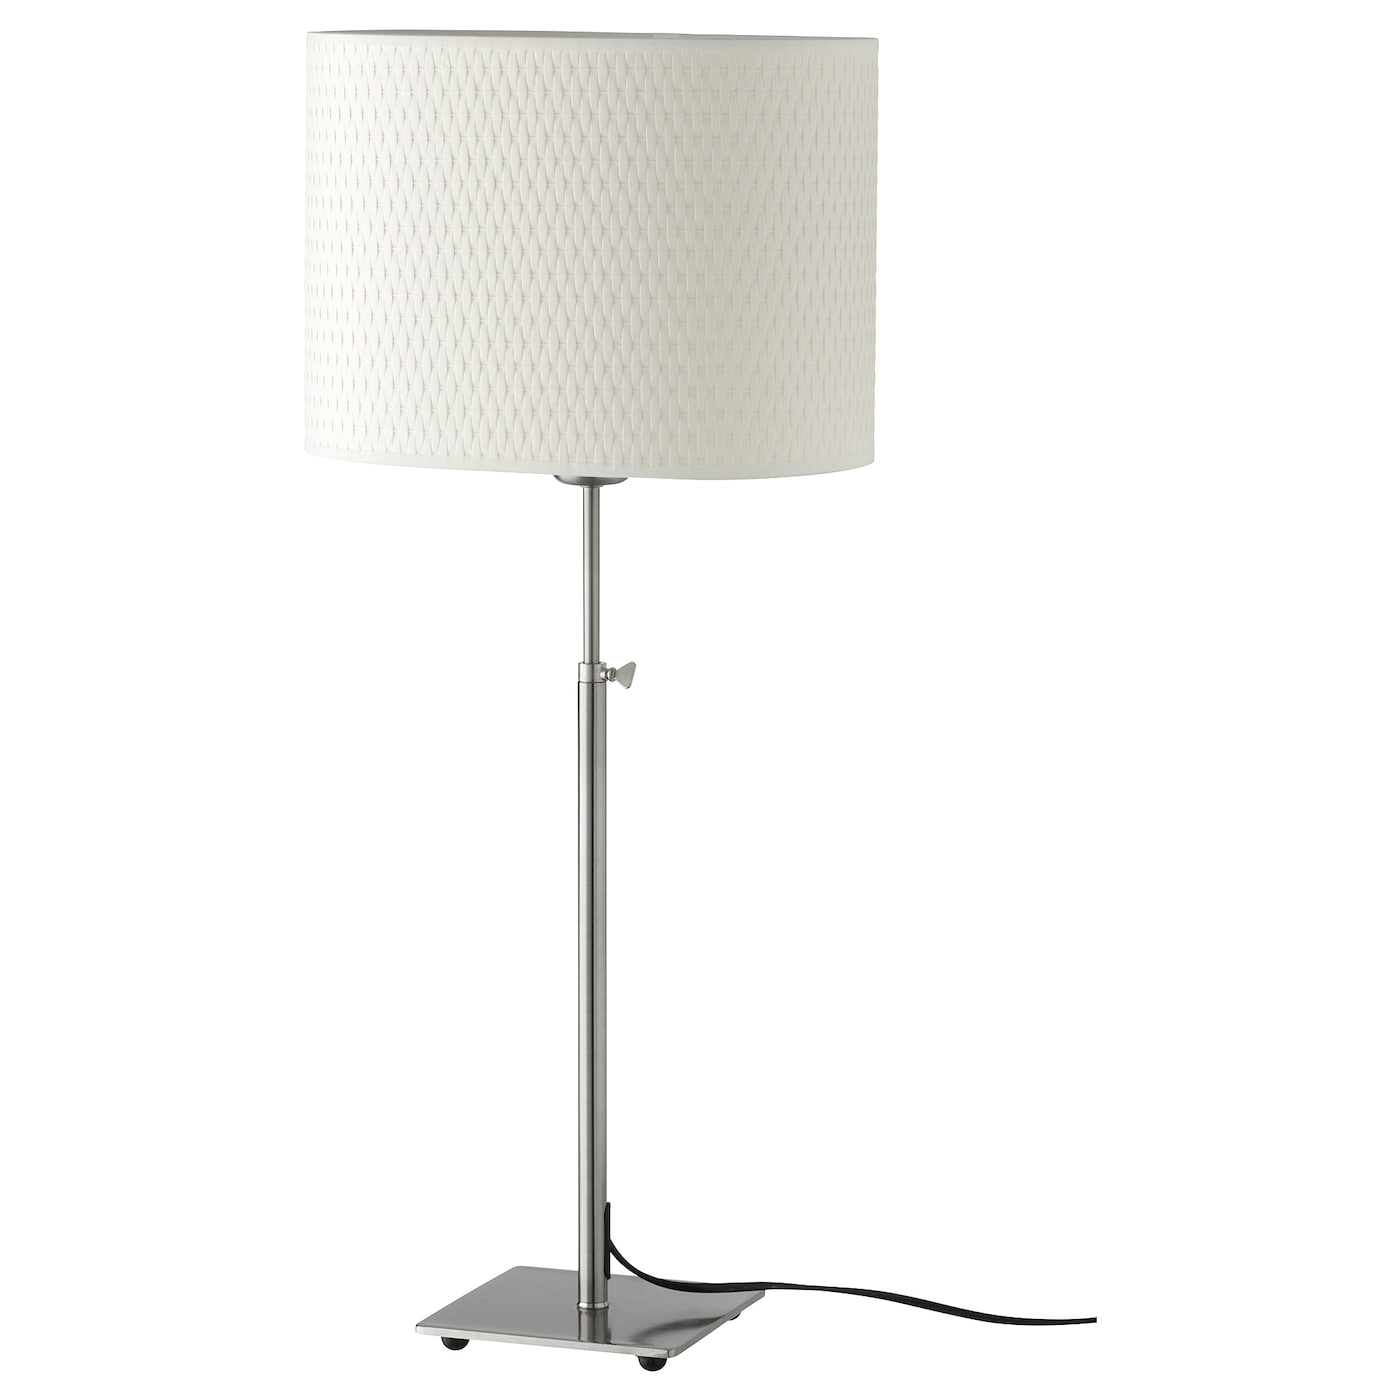 Ikea AlÄng Table Lamp The Height Is Adjule To Suit Your Lighting Needs